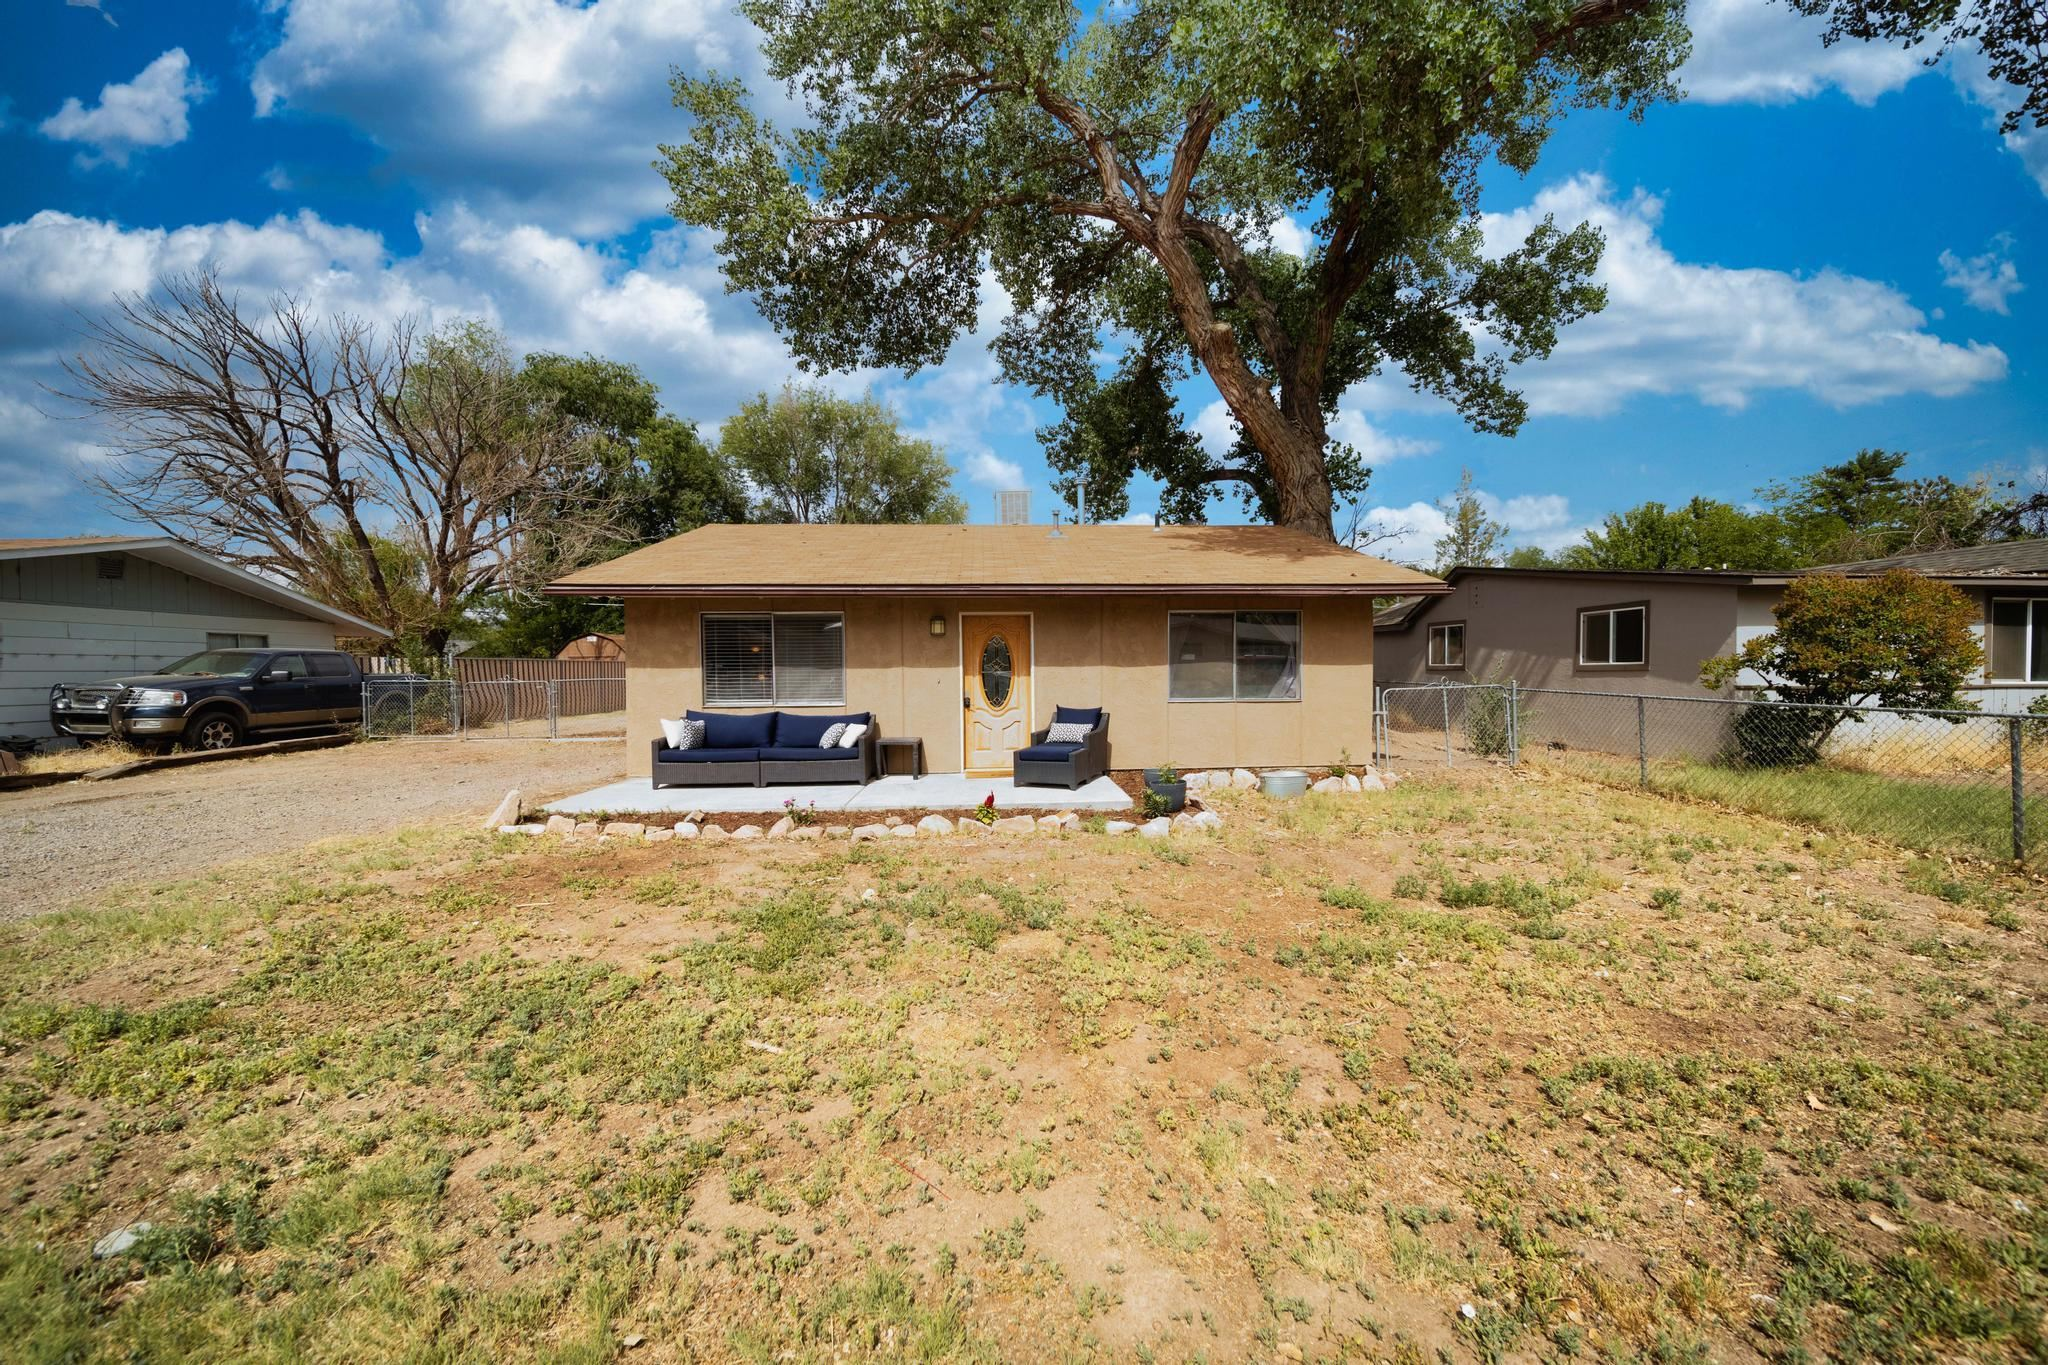 Really cute move in ready home on a dead end street with great RV parking! Newer Carpet, paint, roof and stainless appliances including gas range and brand new gutters.  Lot is ready for your inspiration and there is irrigation water available through OMID with a place for a pump. The lot is fenced and cross fenced to allow for dog run and RV parking and even the chicken coop! Chickens can stay too! You won't have to do a thing inside, just move your things in and make it home. There is no HOA and the new middle school is just right down the street. You will be just minutes from access to Riverfront Trail, public pool, city park w/gazebos,  playground and skate park, the OM library branch, shopping and dining too! This is one you won't want to miss!